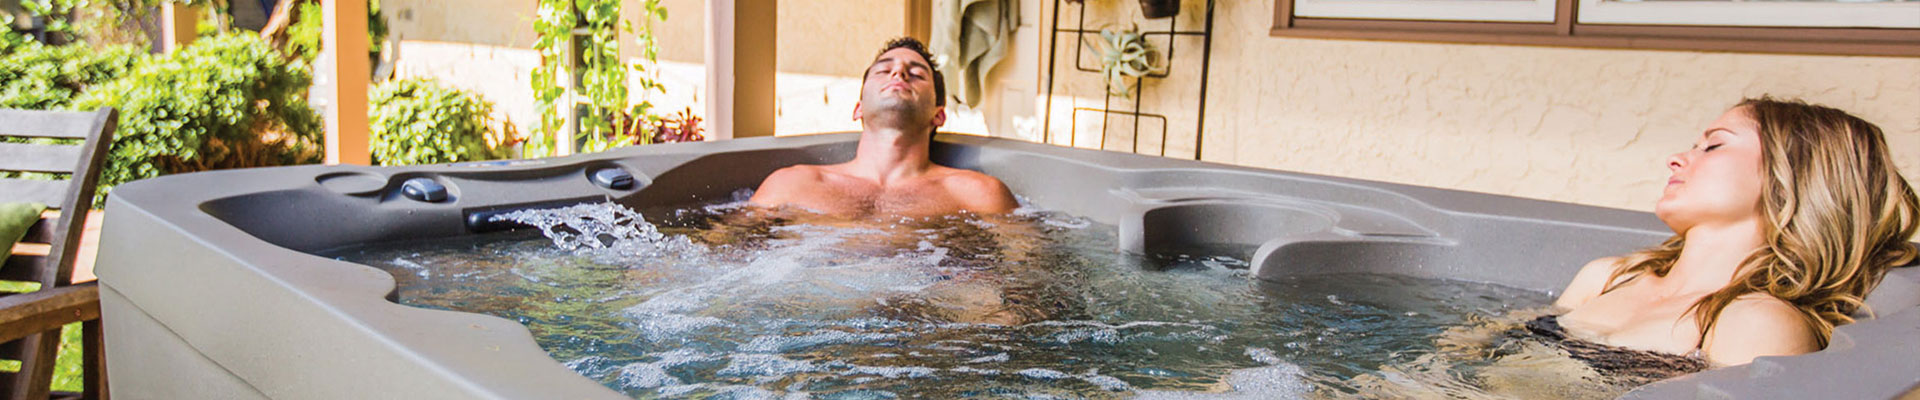 (More!) Reasons to Own a Hot Tub